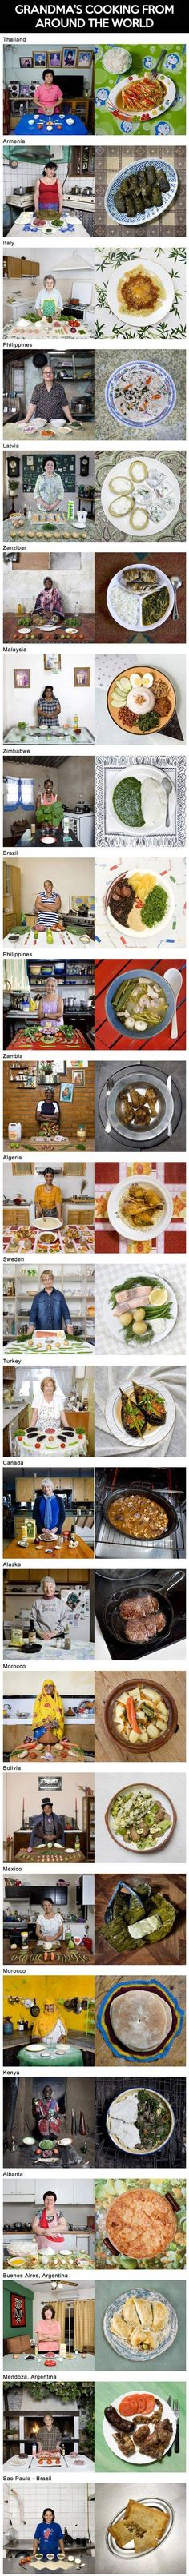 Geeky photographer captures the favorite dishes of grandmothers from around the world.